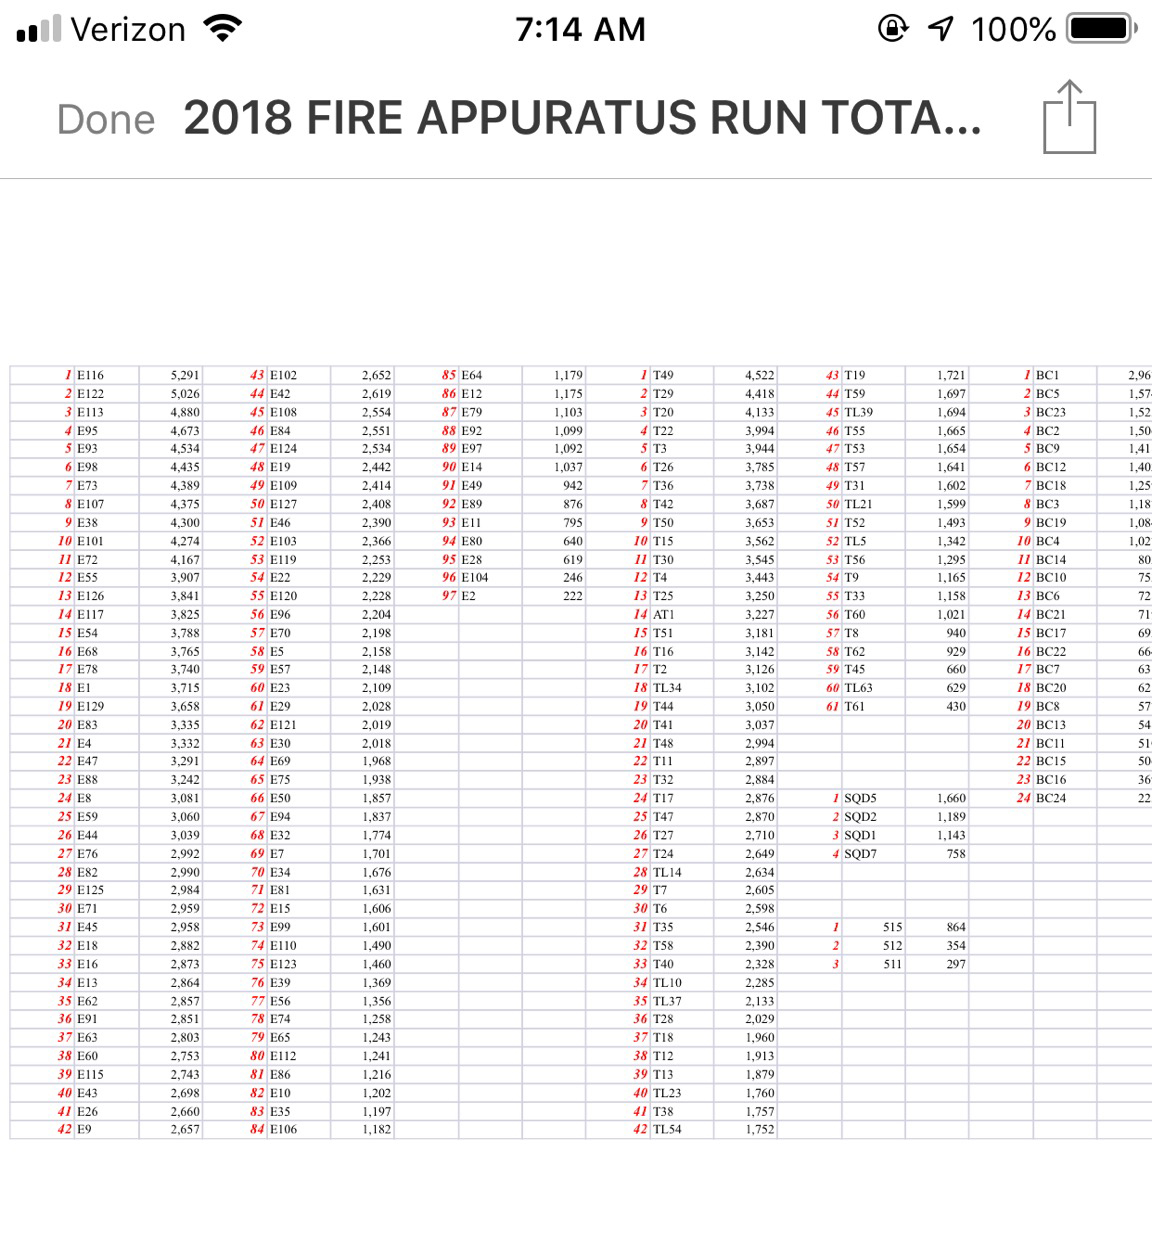 Chicago FD 2018 company run statistics